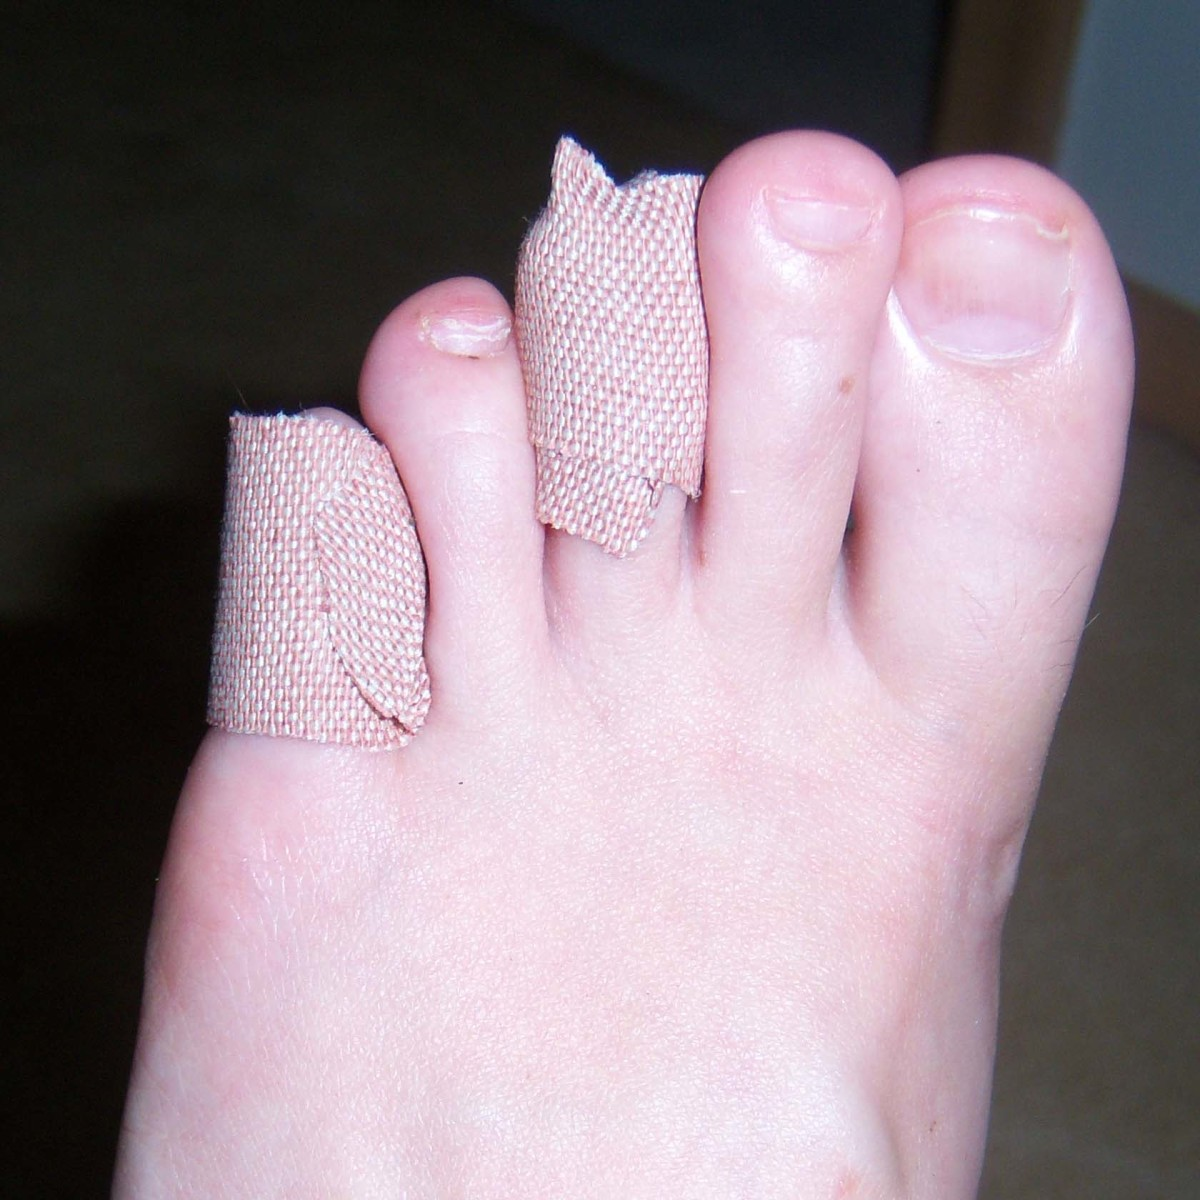 I had a worse blister on the pad of that middle toe as well.